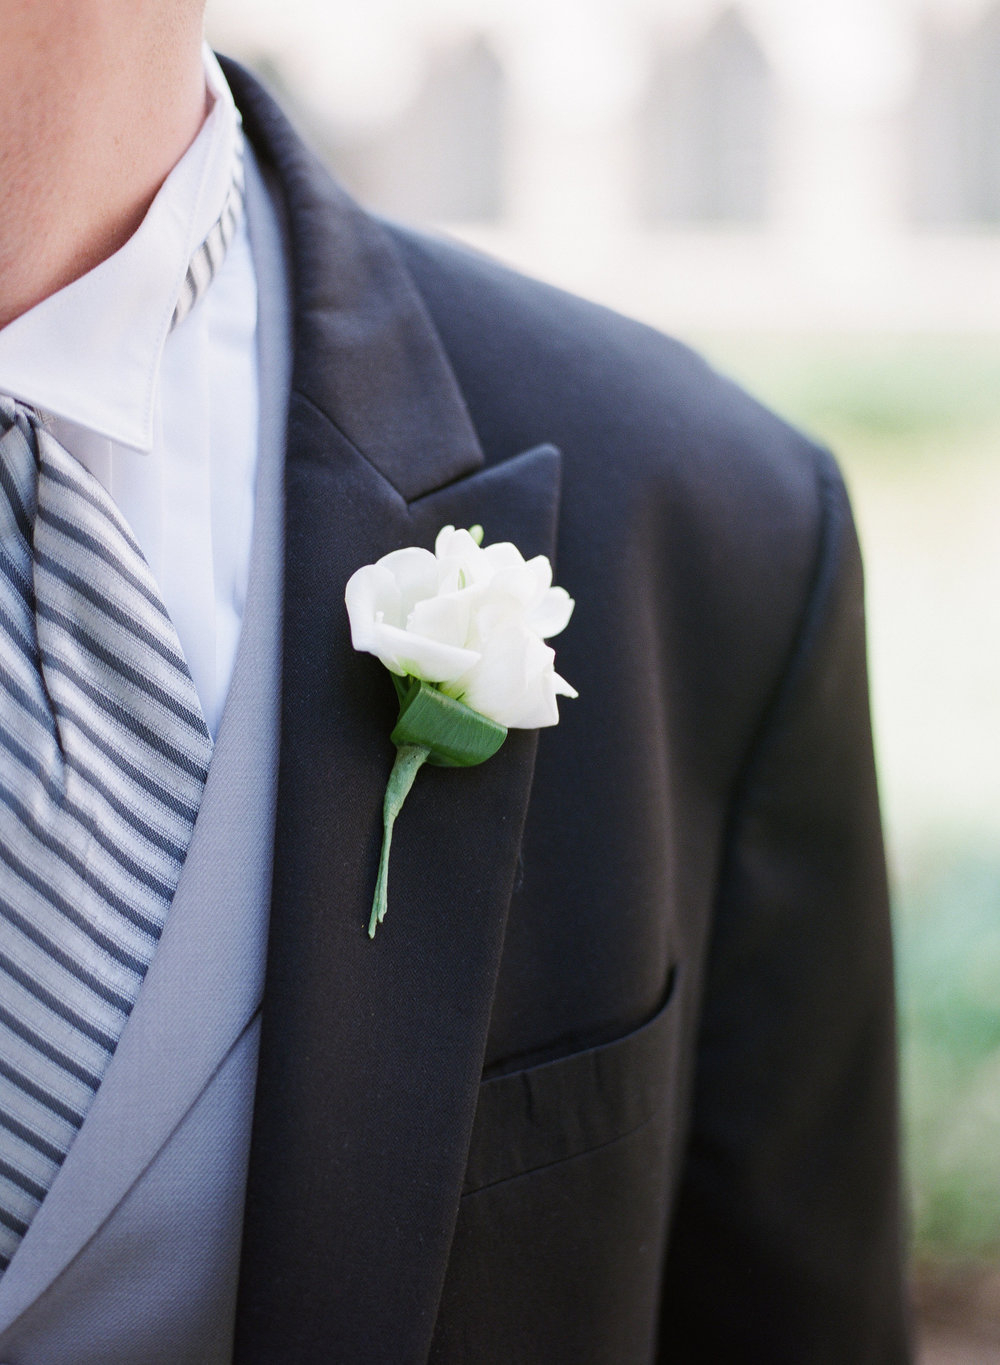 9fa45-chapelhillnctraditionalsouthernweddingboutonnierechapelhillnctraditionalsouthernweddingboutonniere.jpg